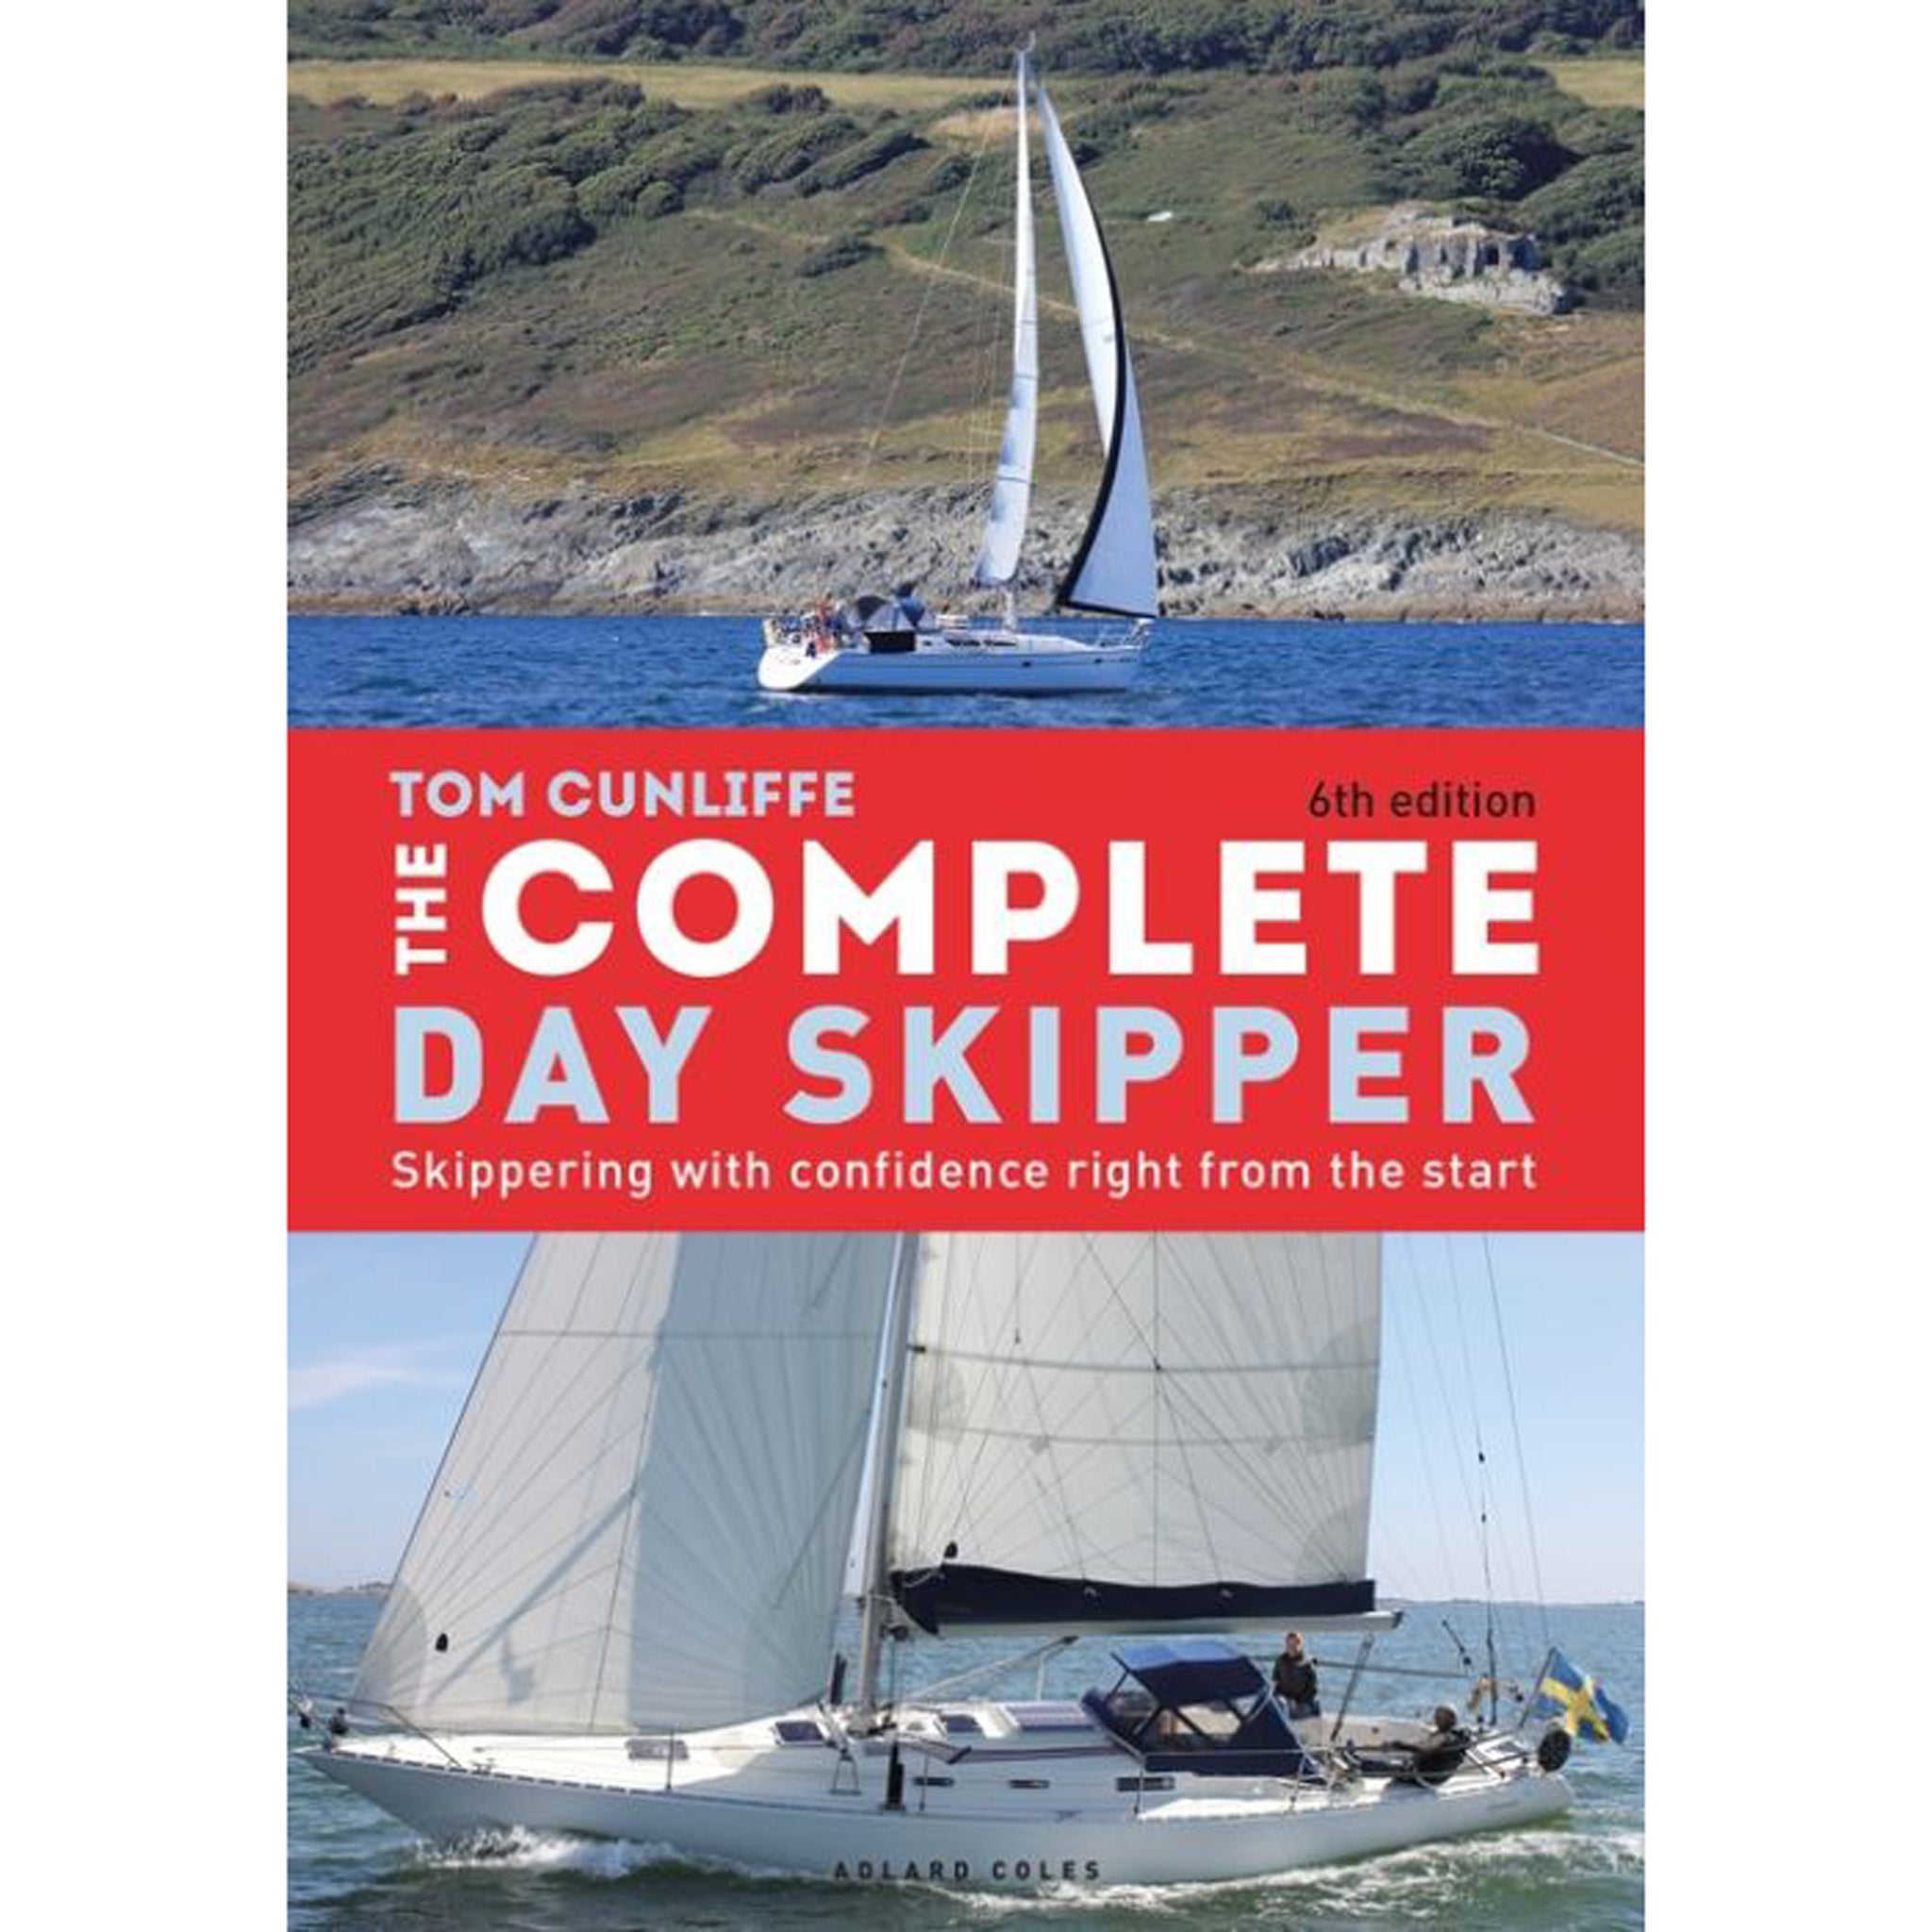 The Complete Day Skipper - Tom Cunliffe